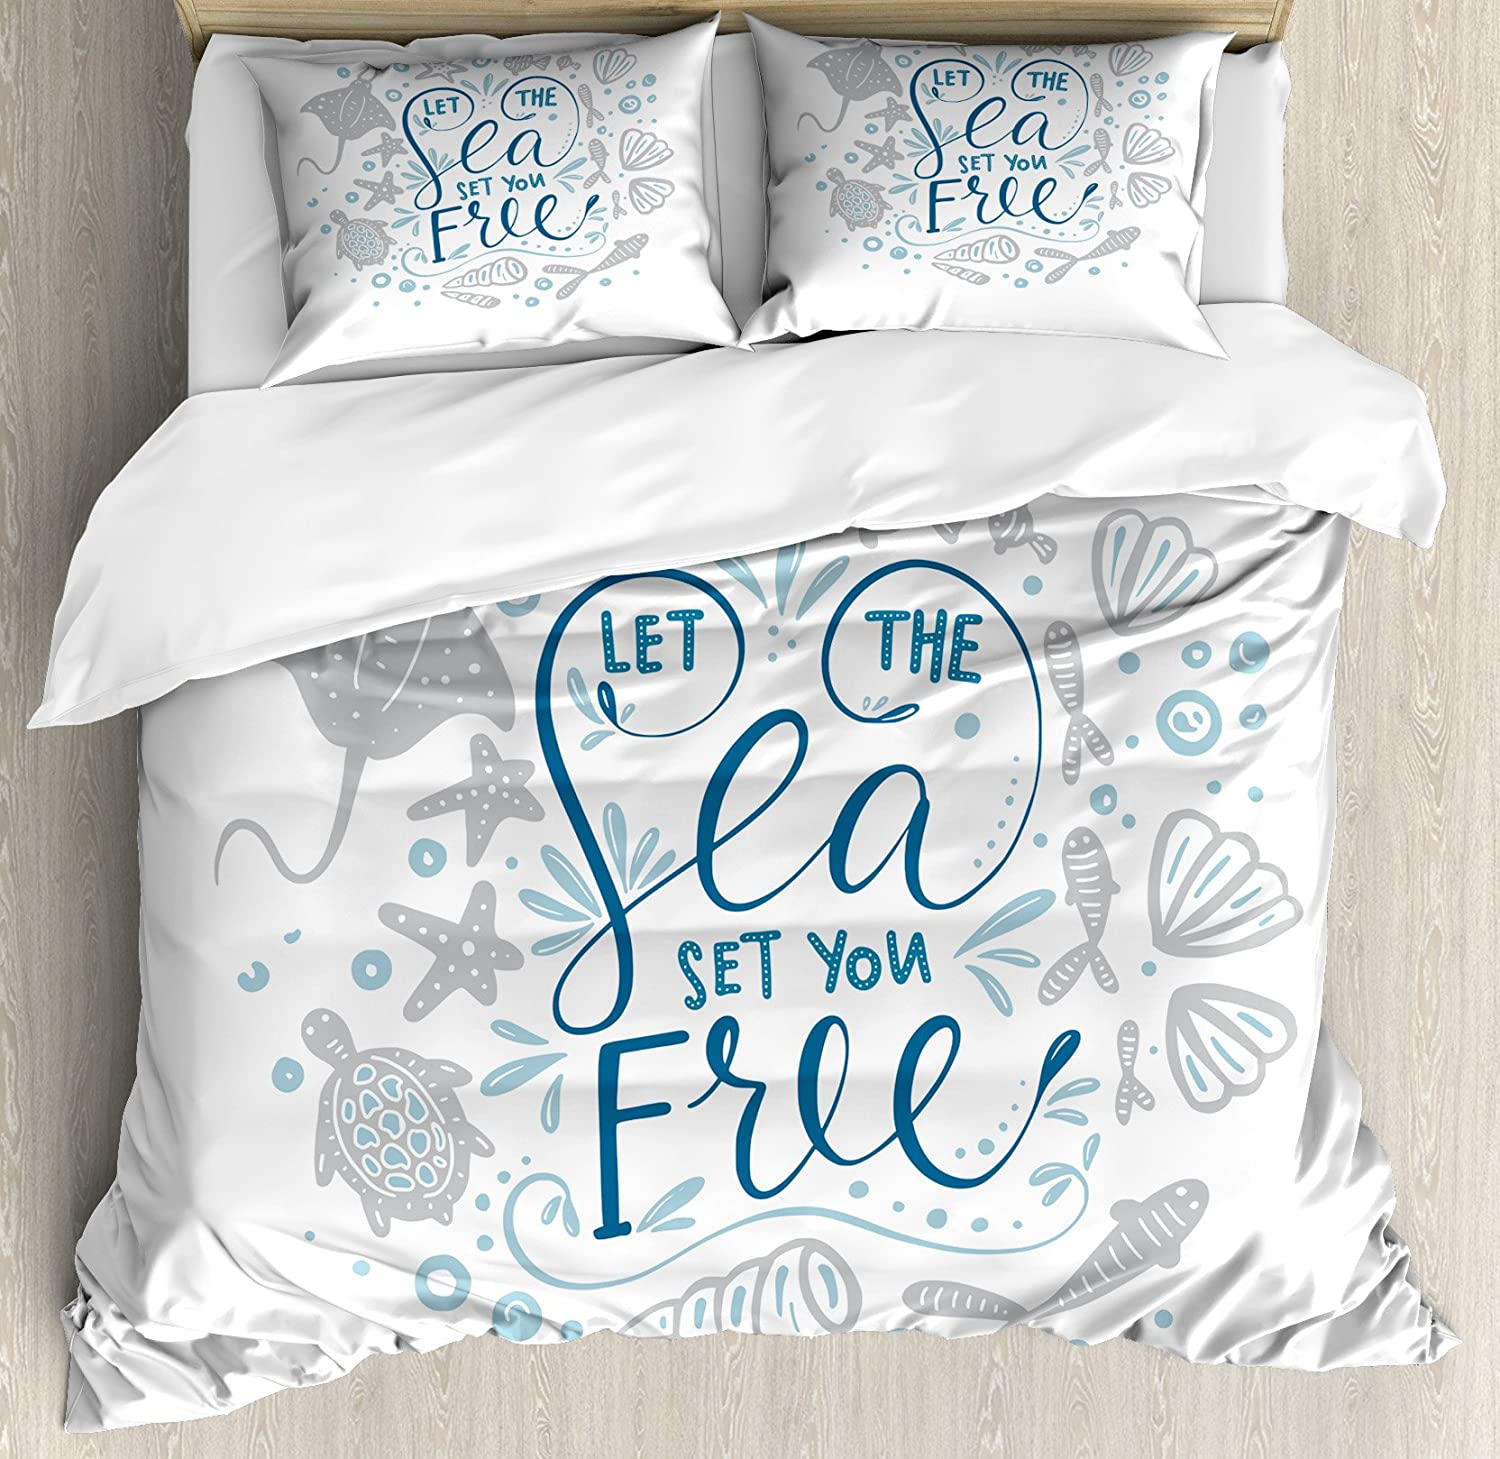 Ambesonne Nautical Duvet Cover Set, Let The Sea Set You Free Words with Shellfish Turtle and Stingray, Decorative 3 Piece Bedding Set with 2 Pillow Shams, Queen Size, Blue Navy